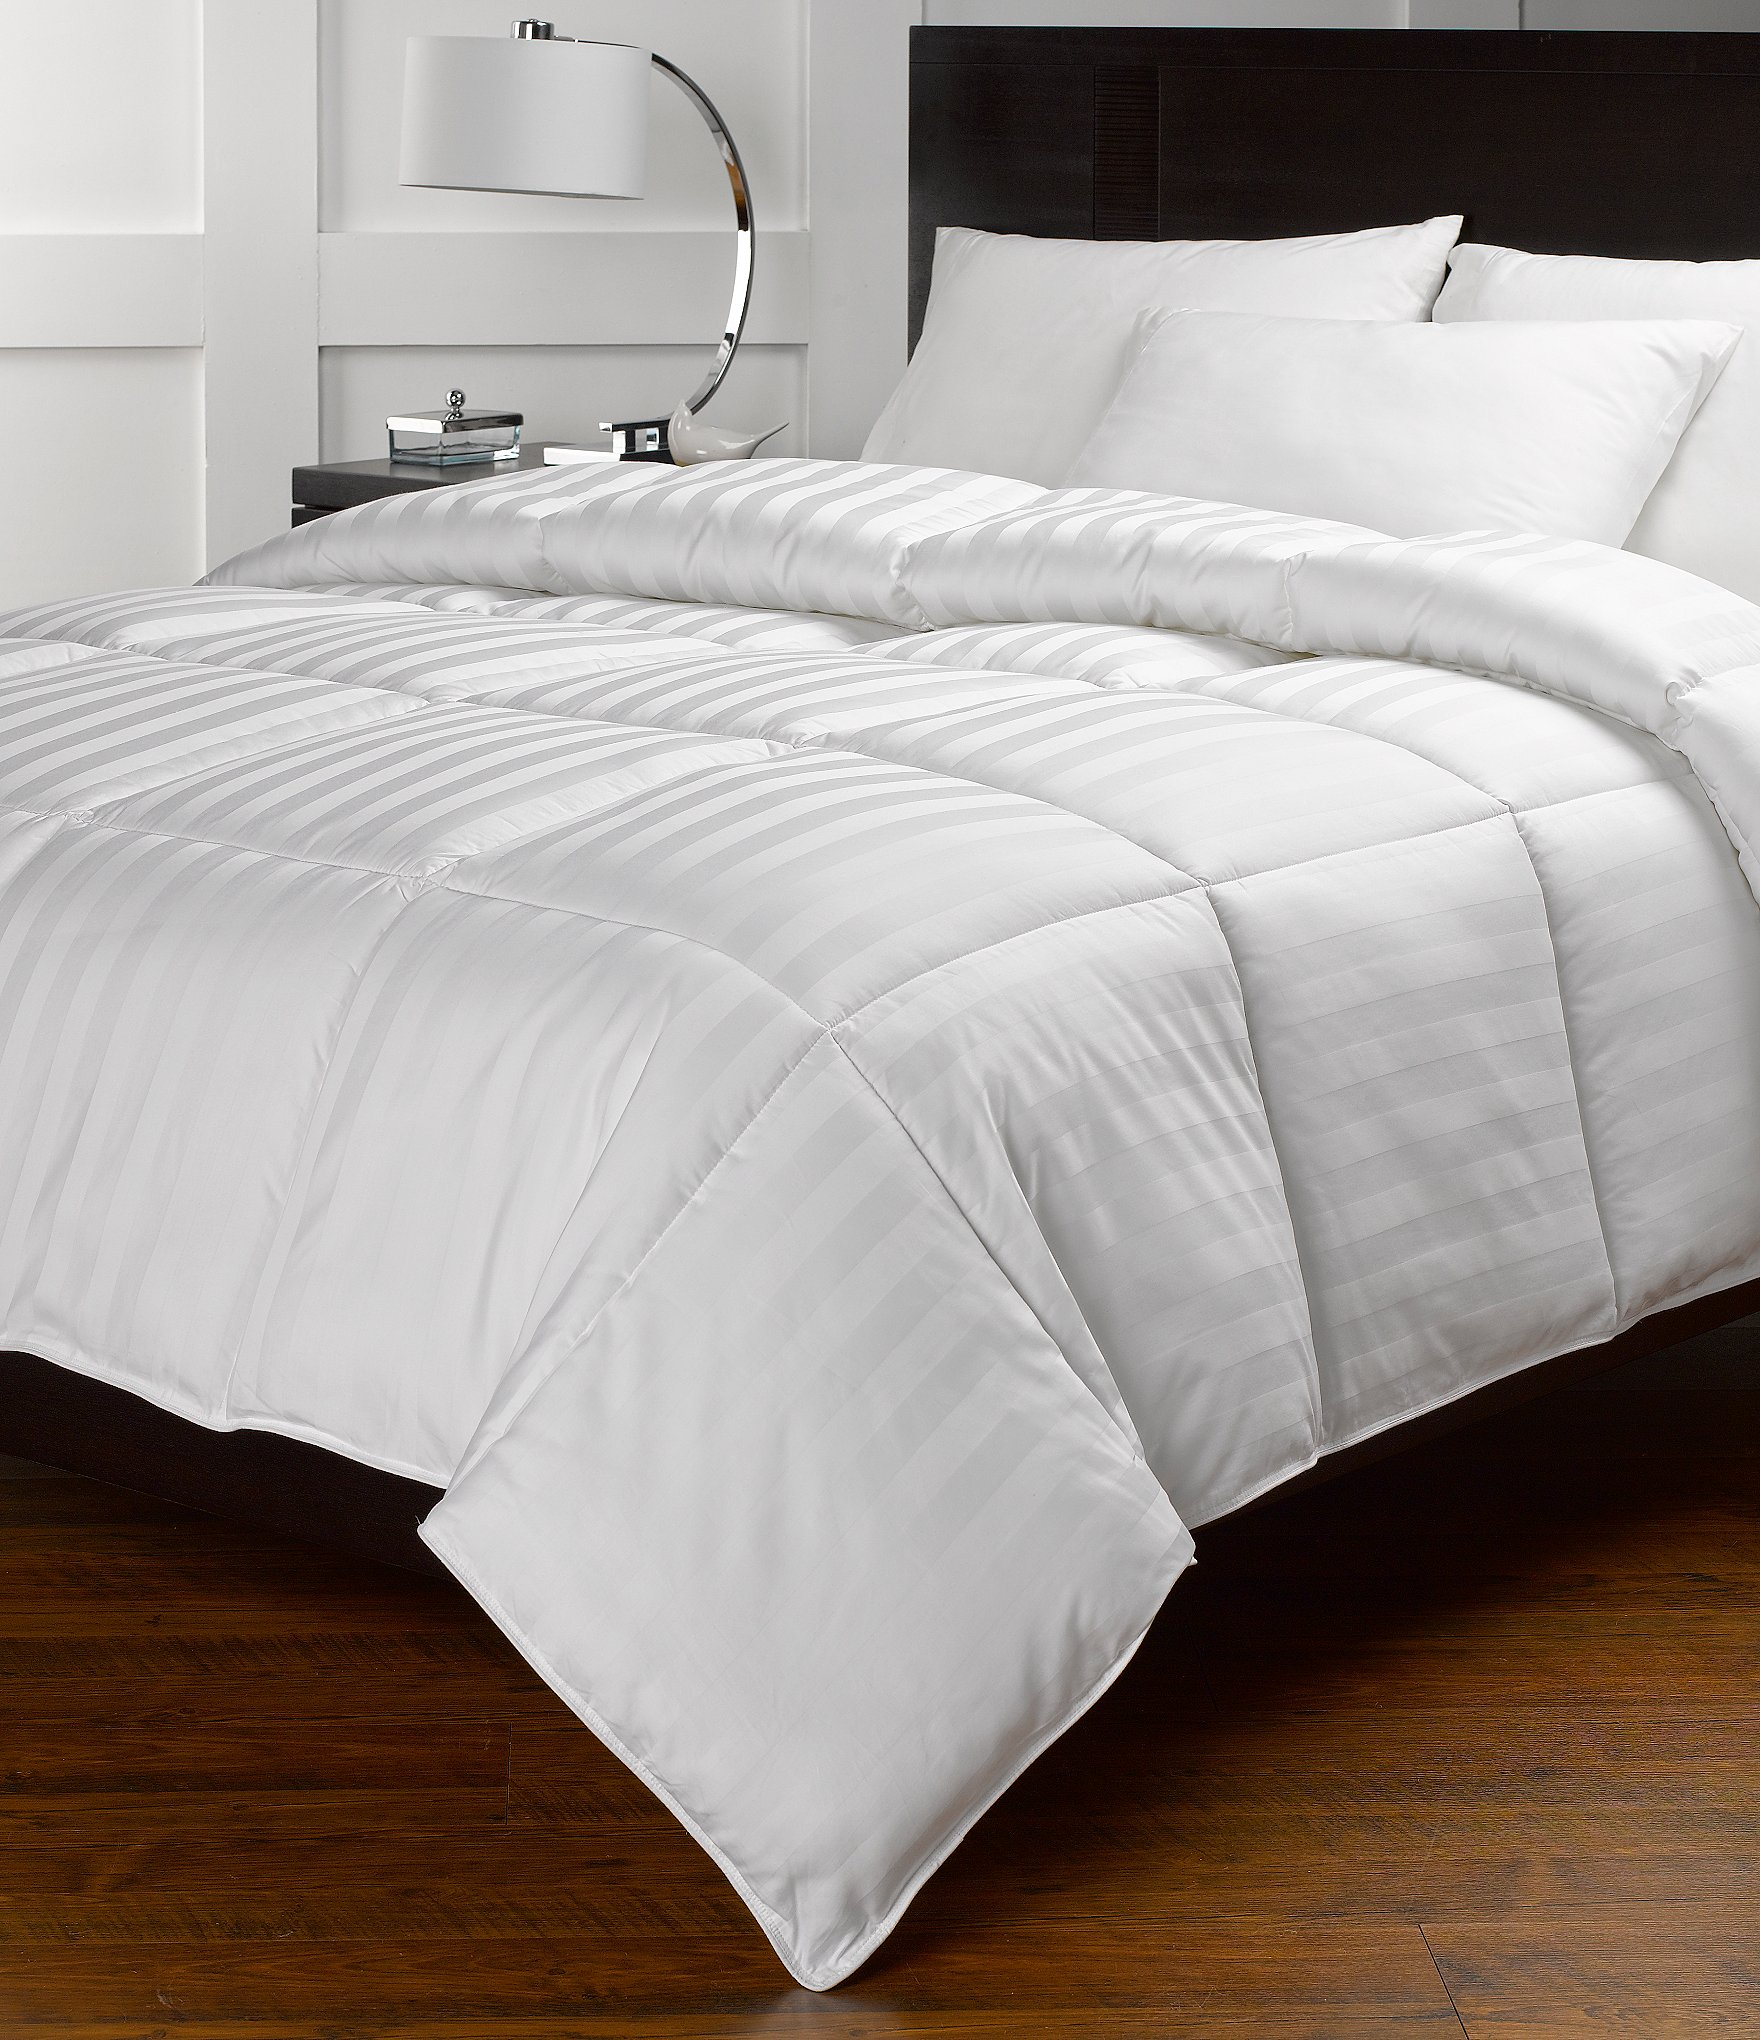 Noble Excellence Lightweight Warmth Comforter Dillards